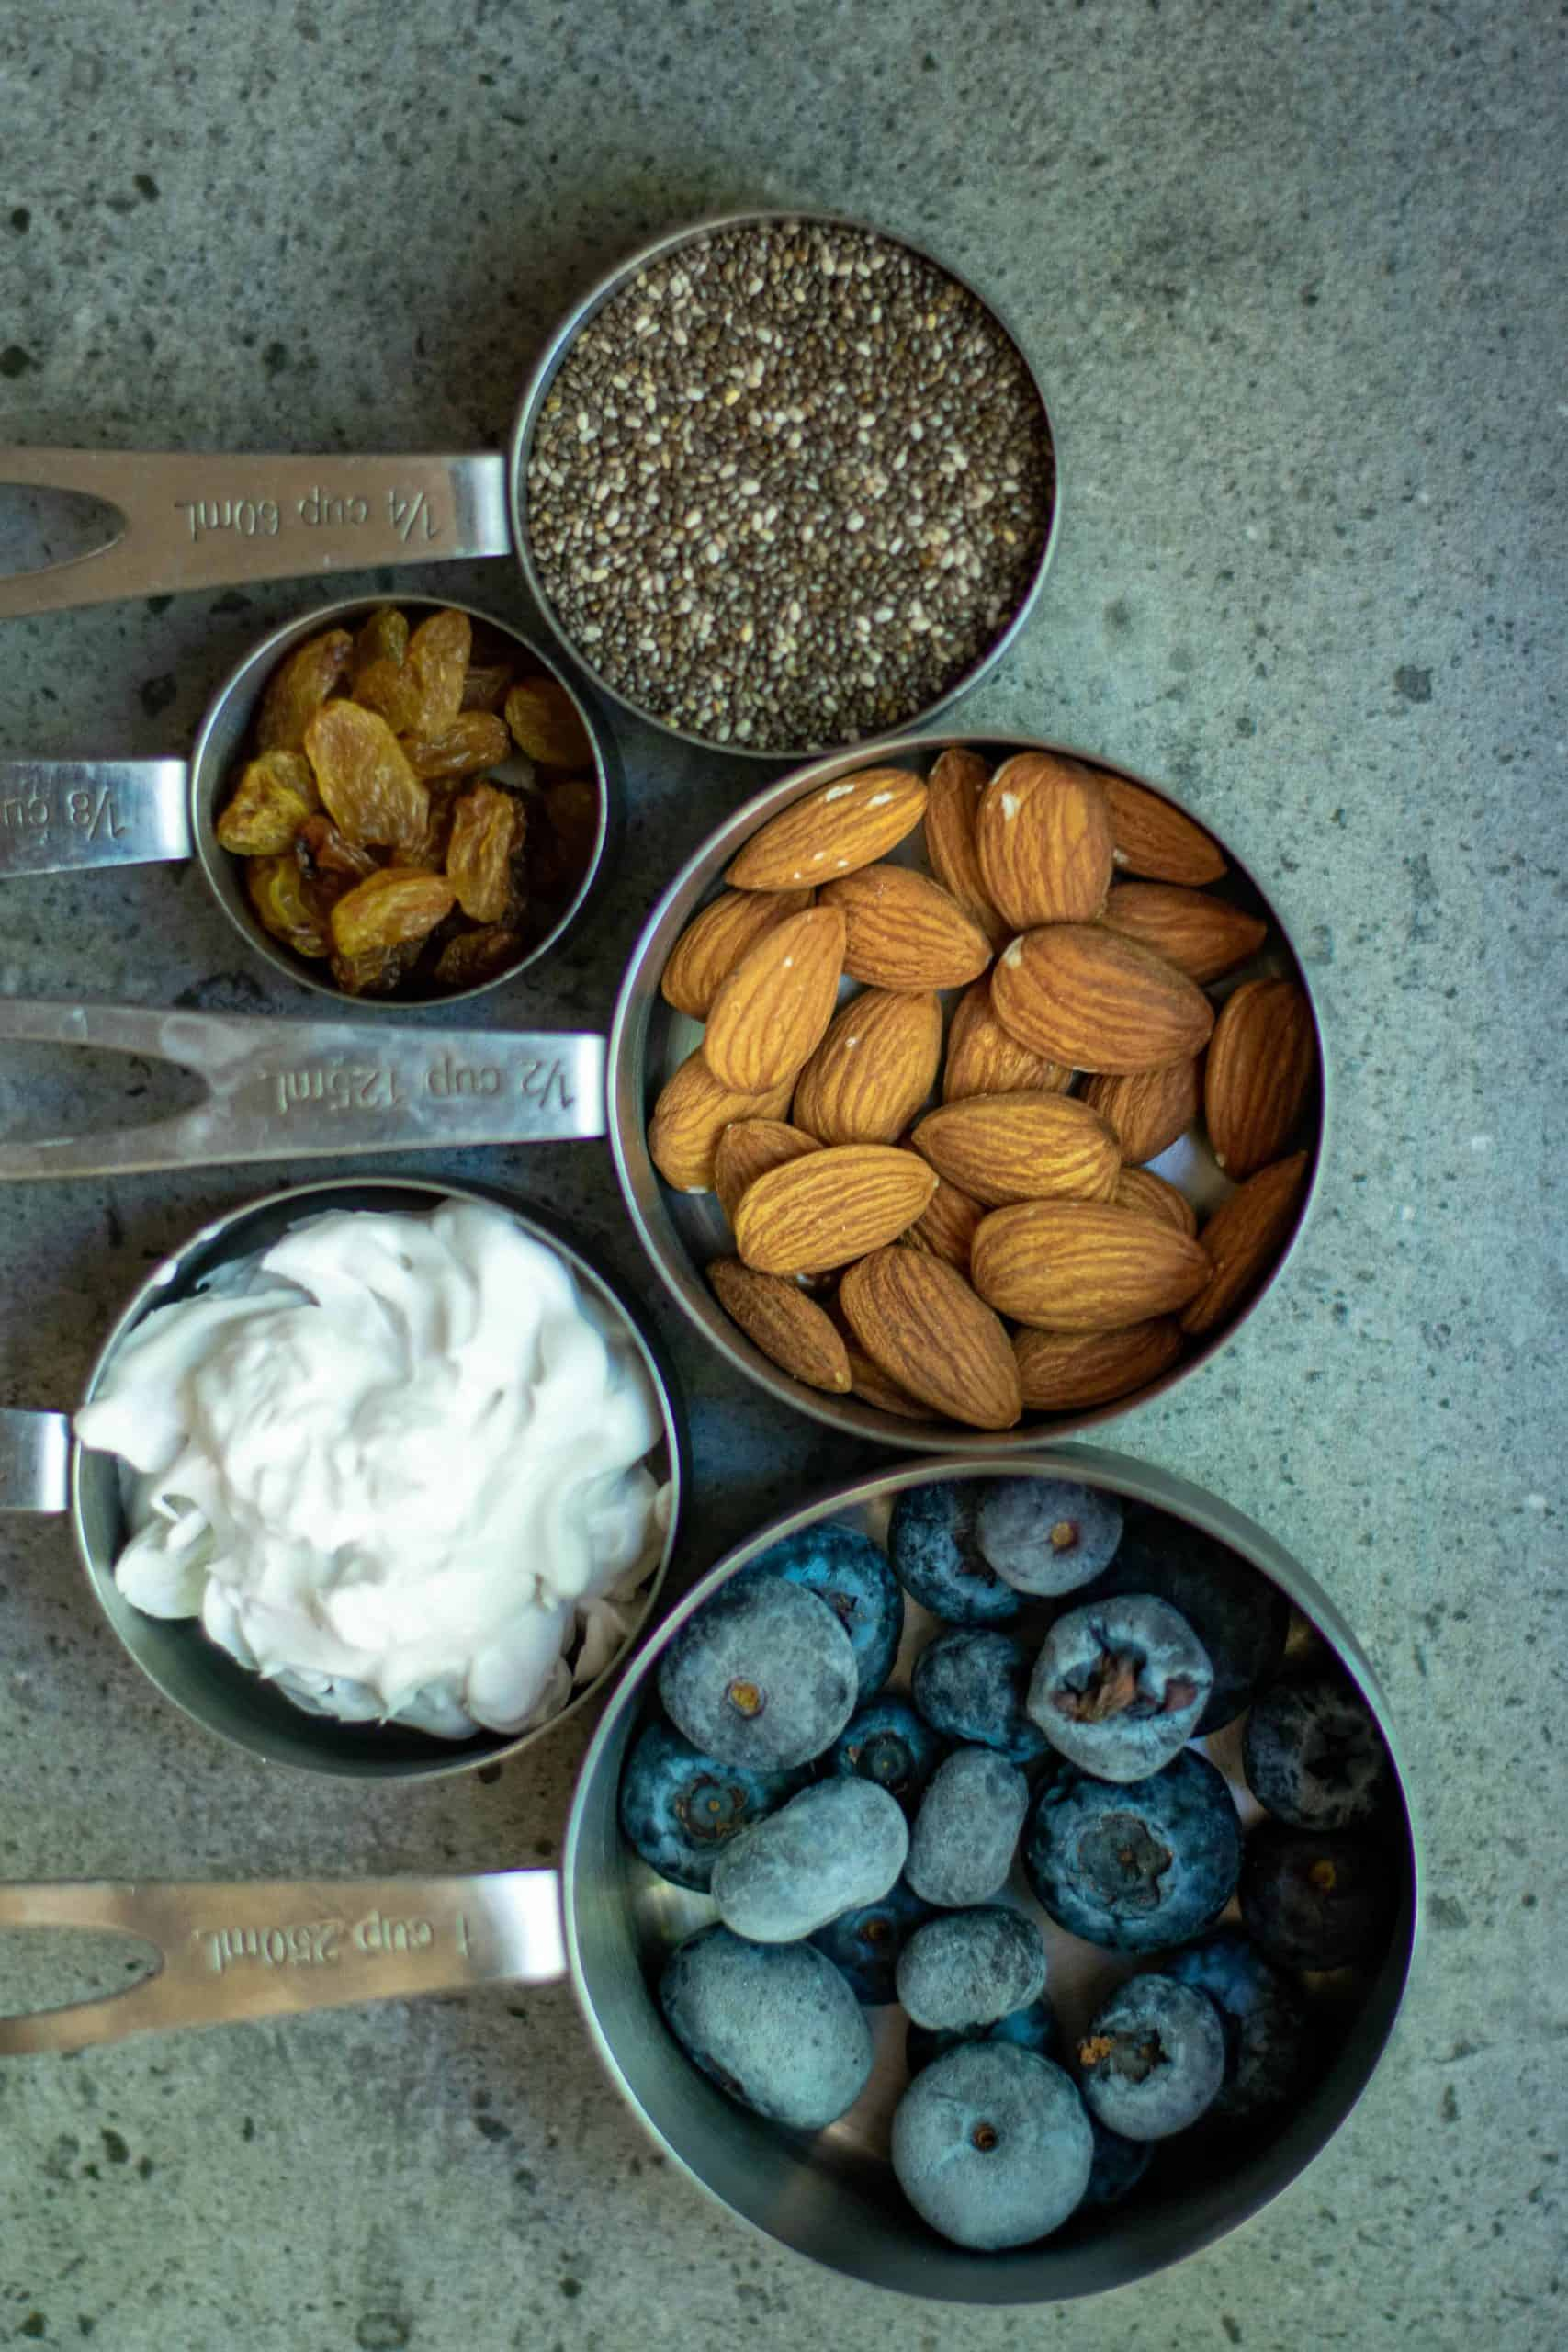 Ingredients for chia pudding with blueberries.